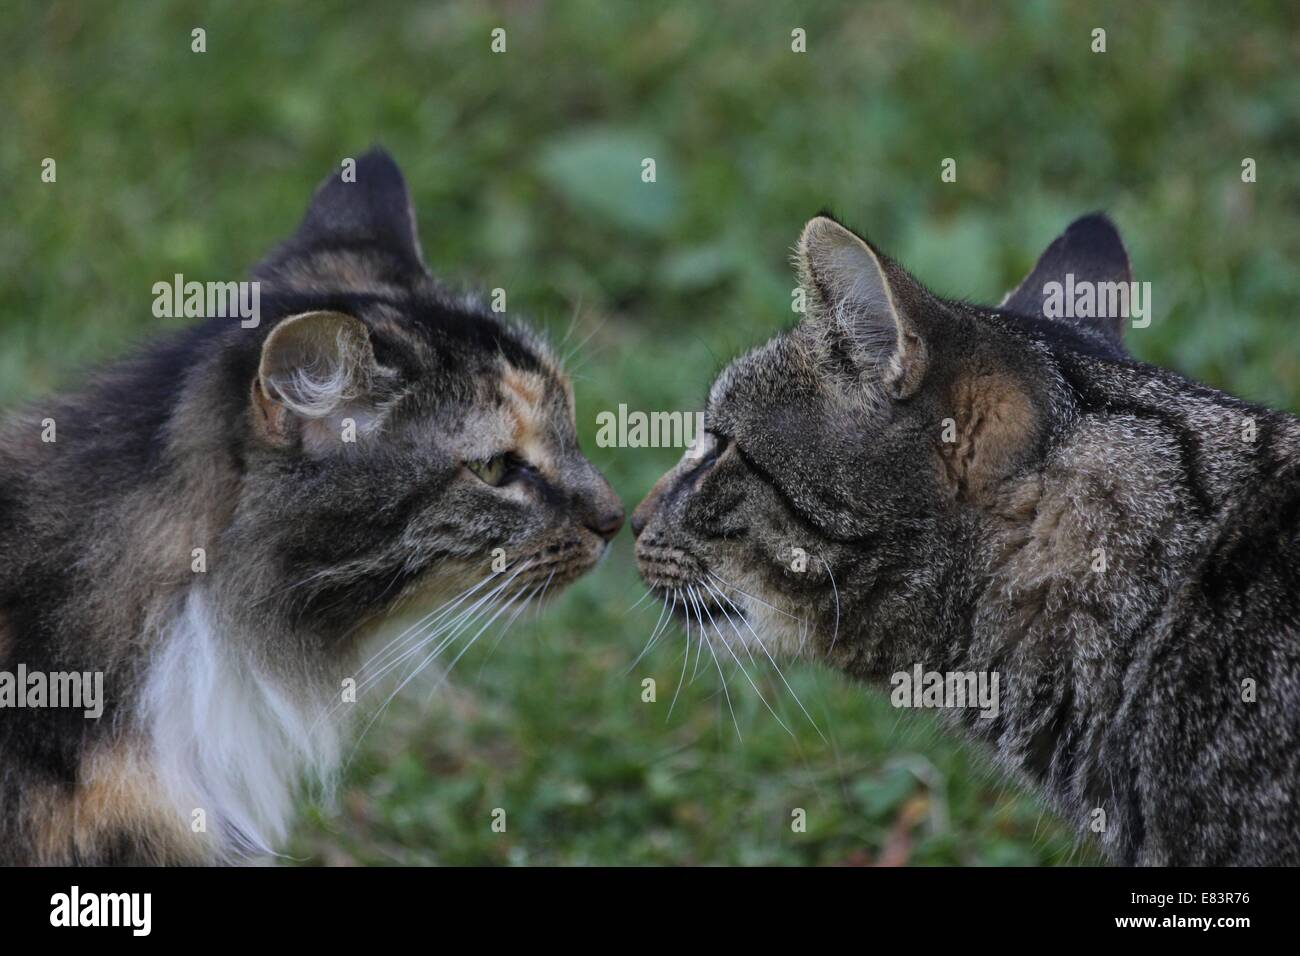 Two cats touching noses. - Stock Image